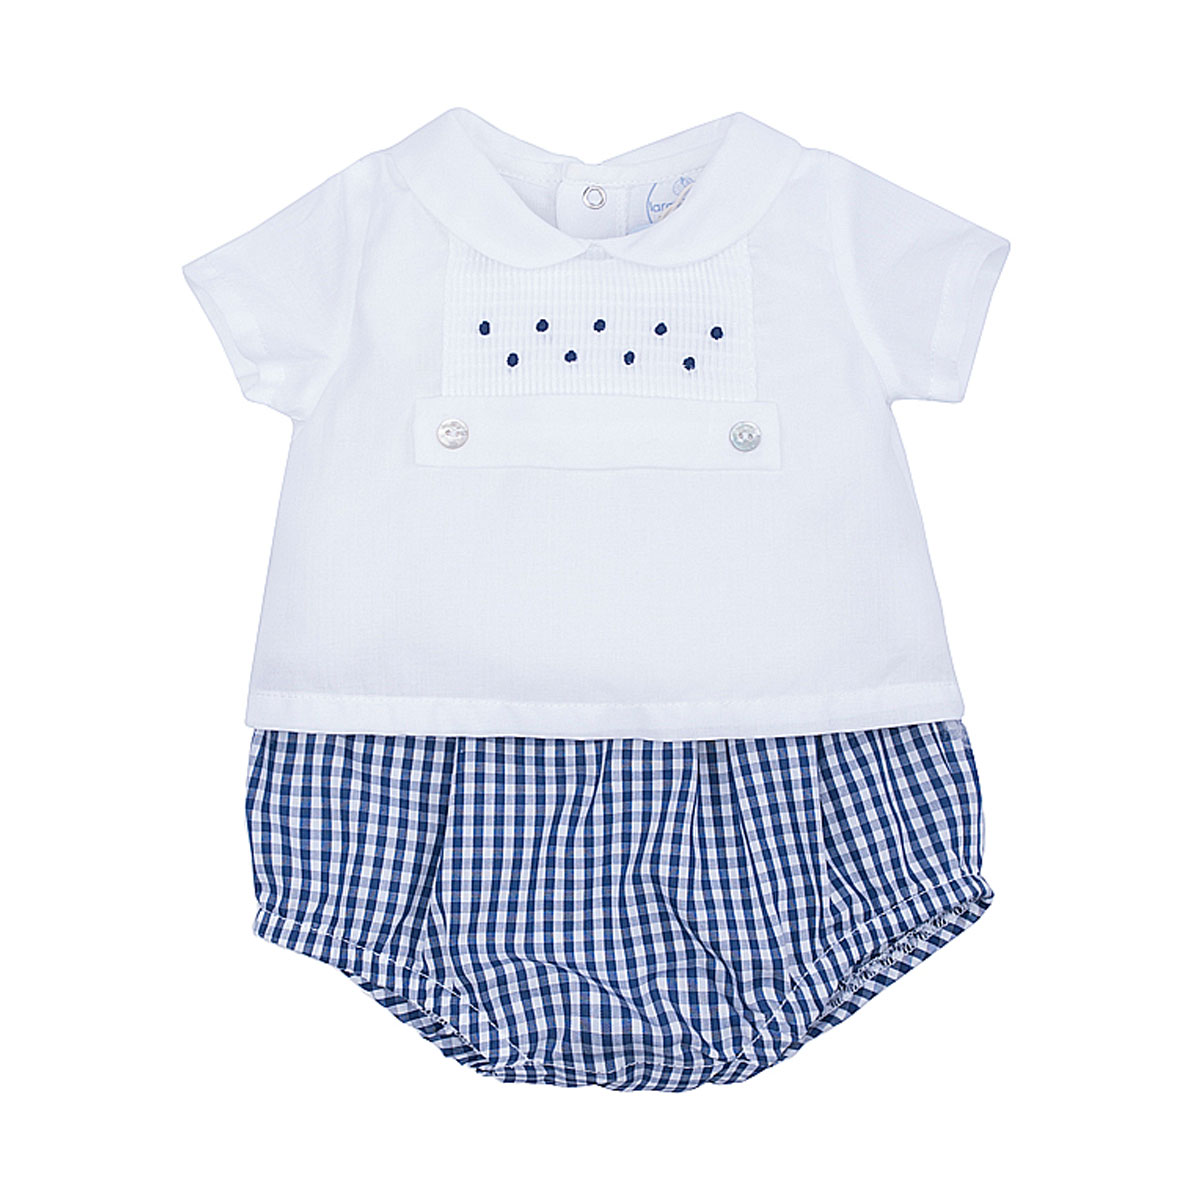 Laranjinha Short Sleeve 2-in-1 Set with White Top and Blue Checkered Bloomer in Navy